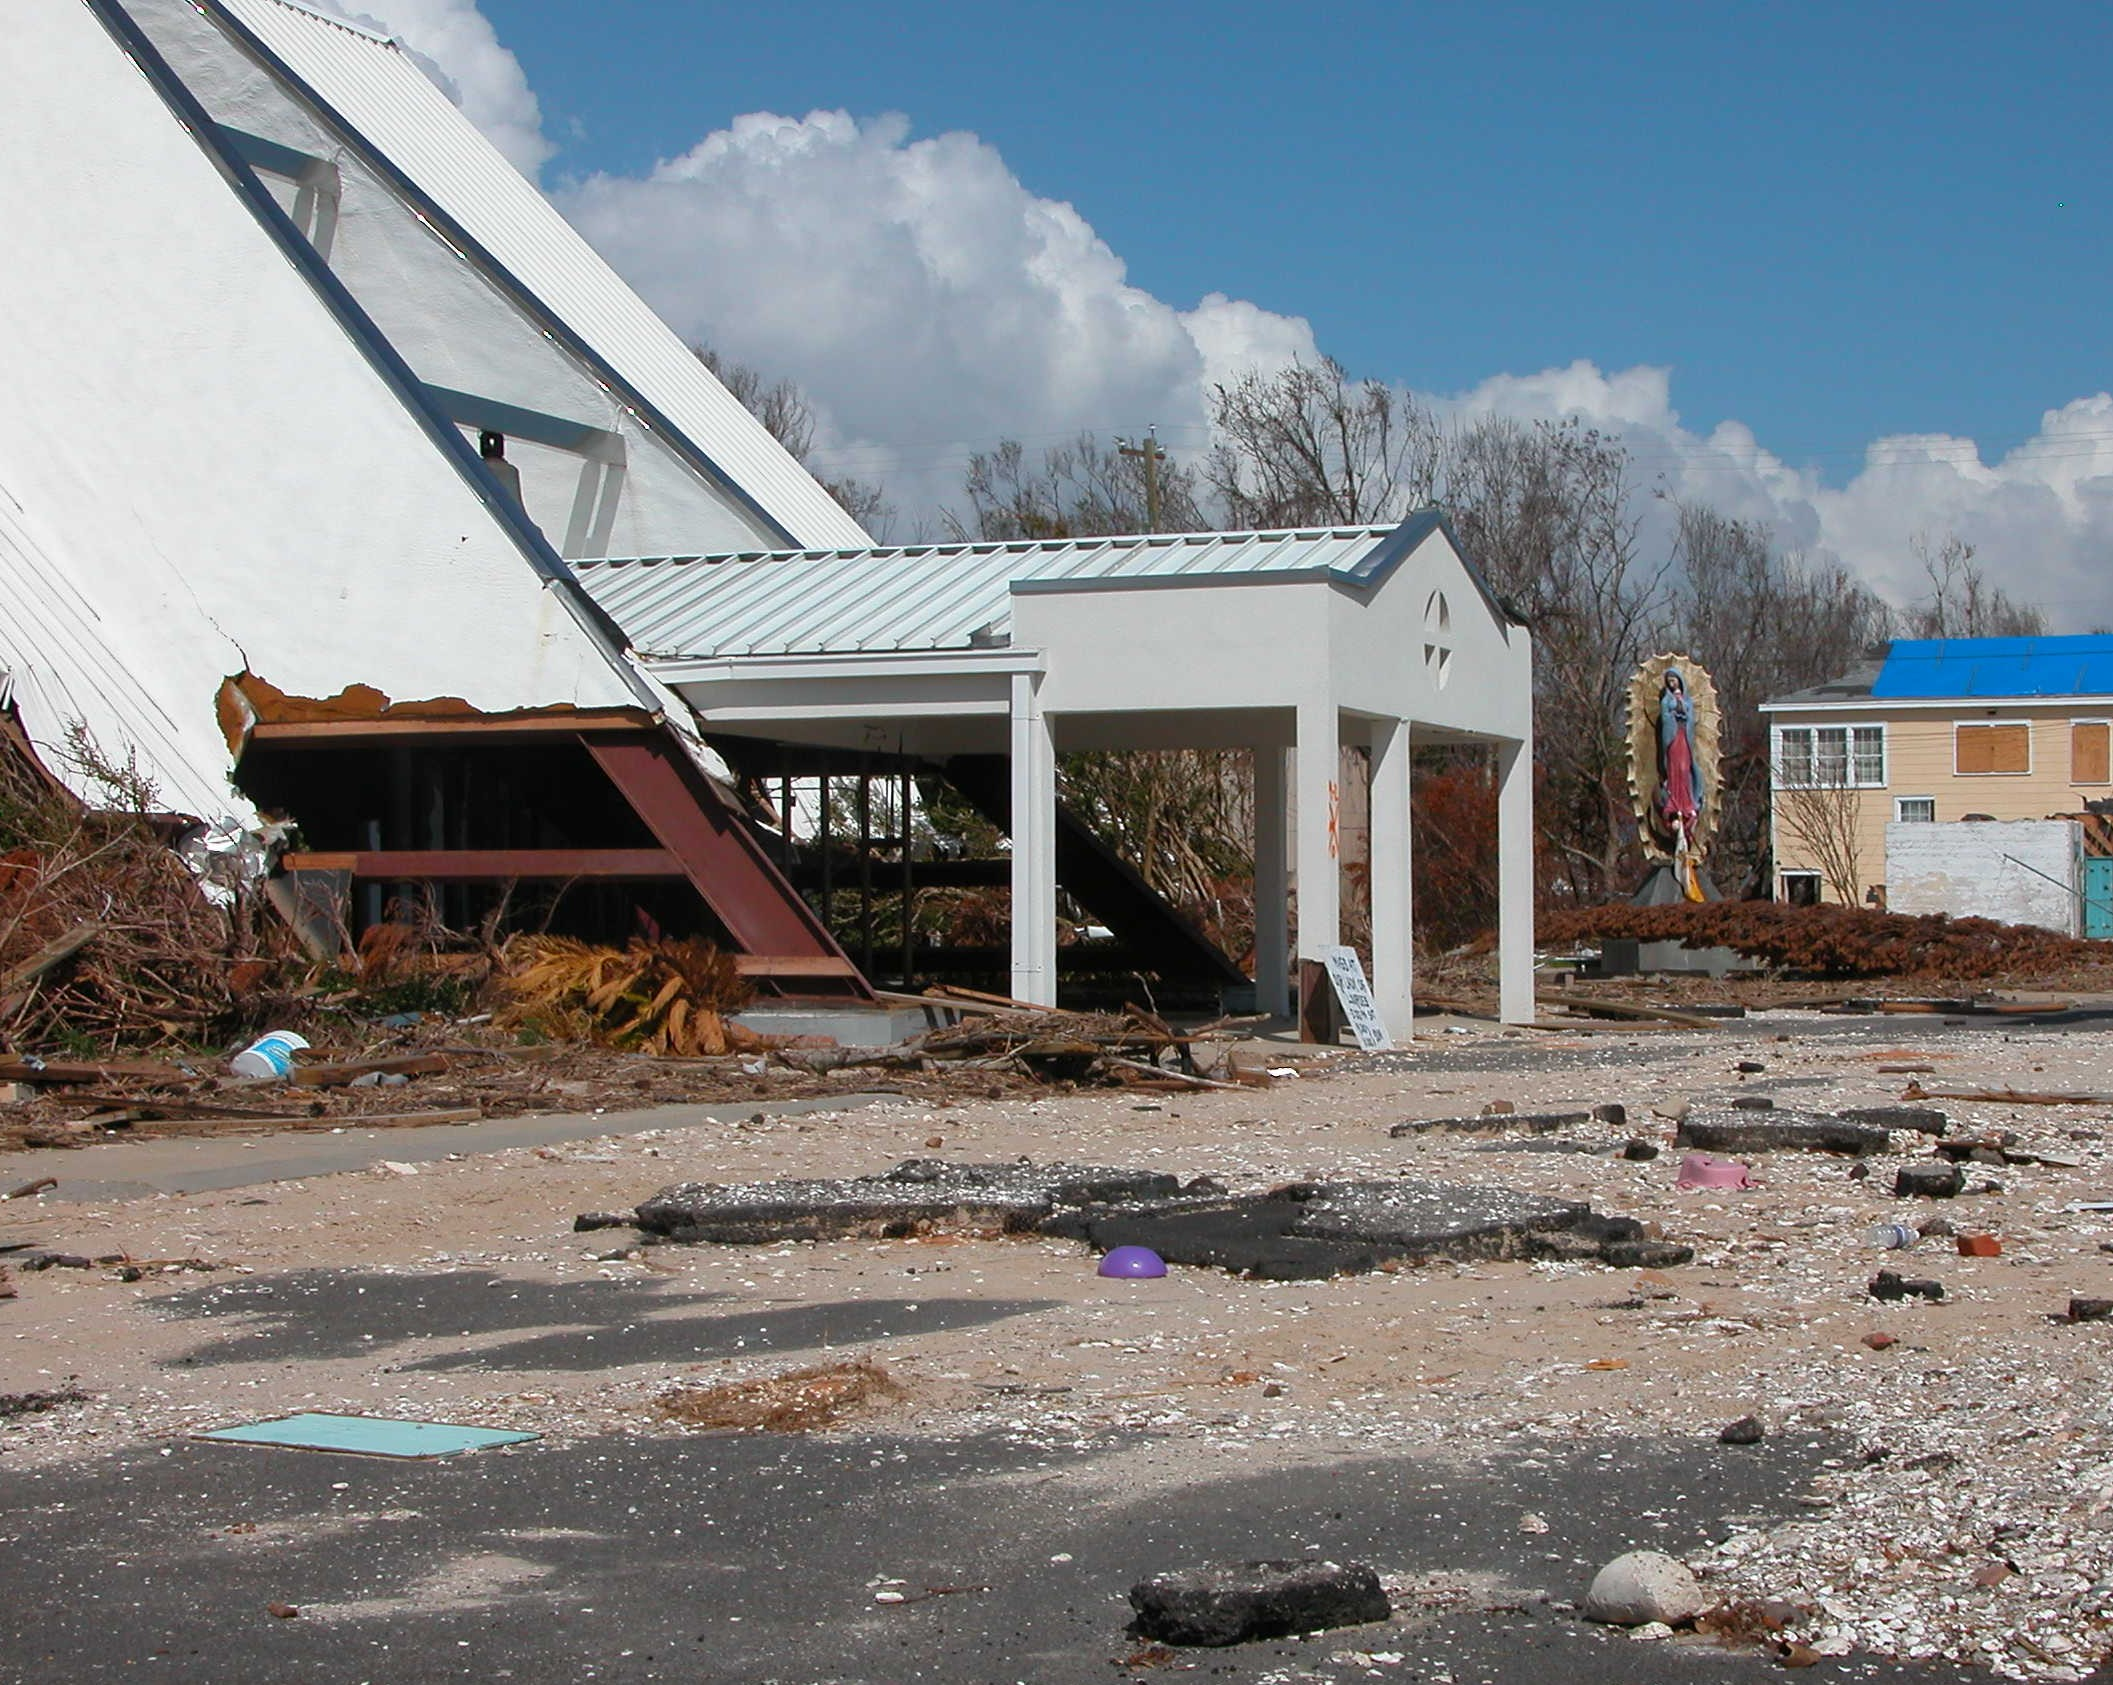 """10. """"The Catholic Church in Pass Christian had been torn apart by the wind and water, yet a shrine of Mary had been spared. There wasn't a scratch or mark on her."""" - David Aft"""